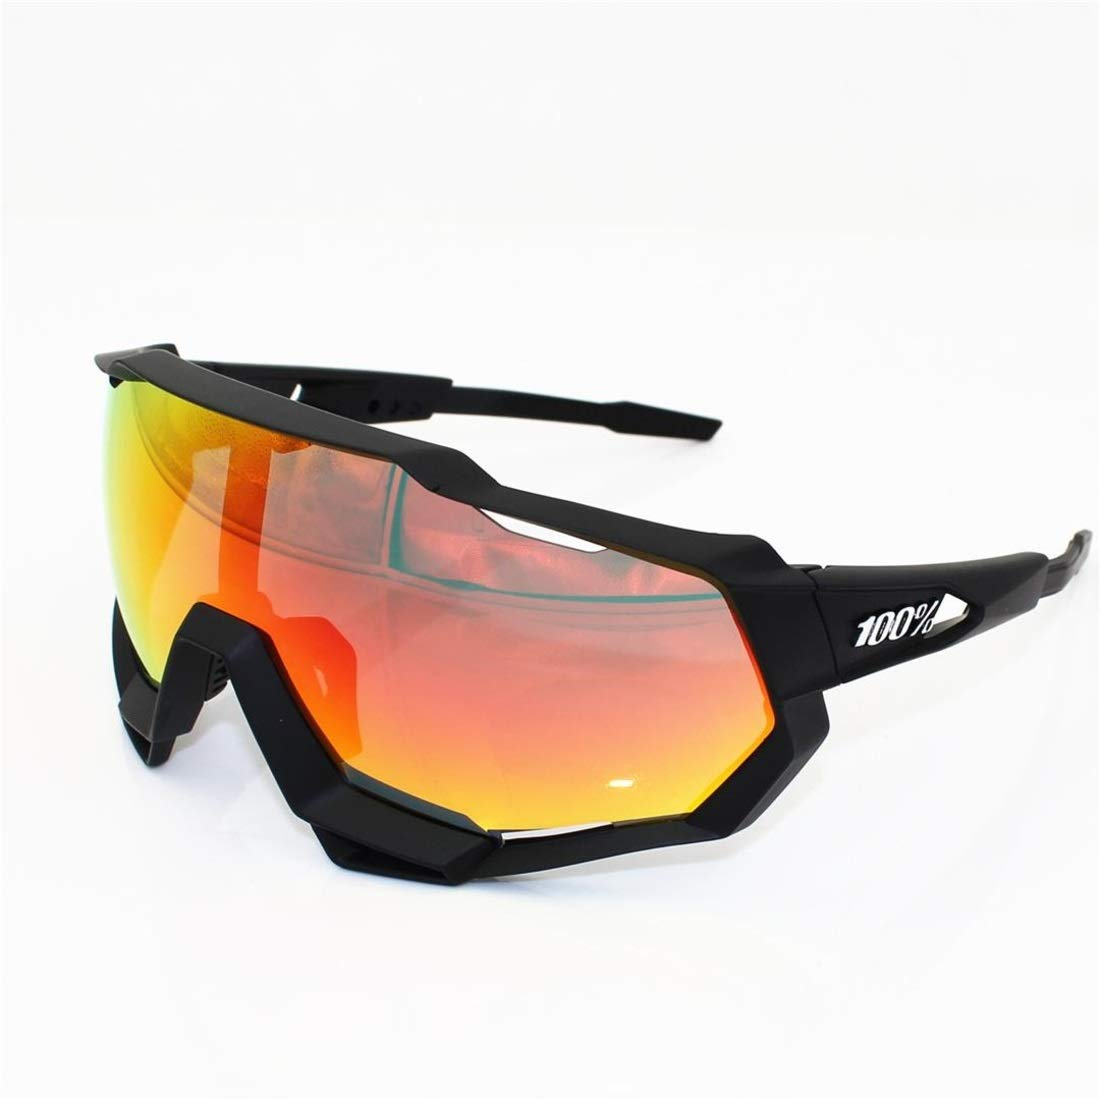 BAOYIT Cycling Glasses Bicycle Running Mountaineering Windproof Sand Glasses for Women Men (Color : B) by BAOYIT